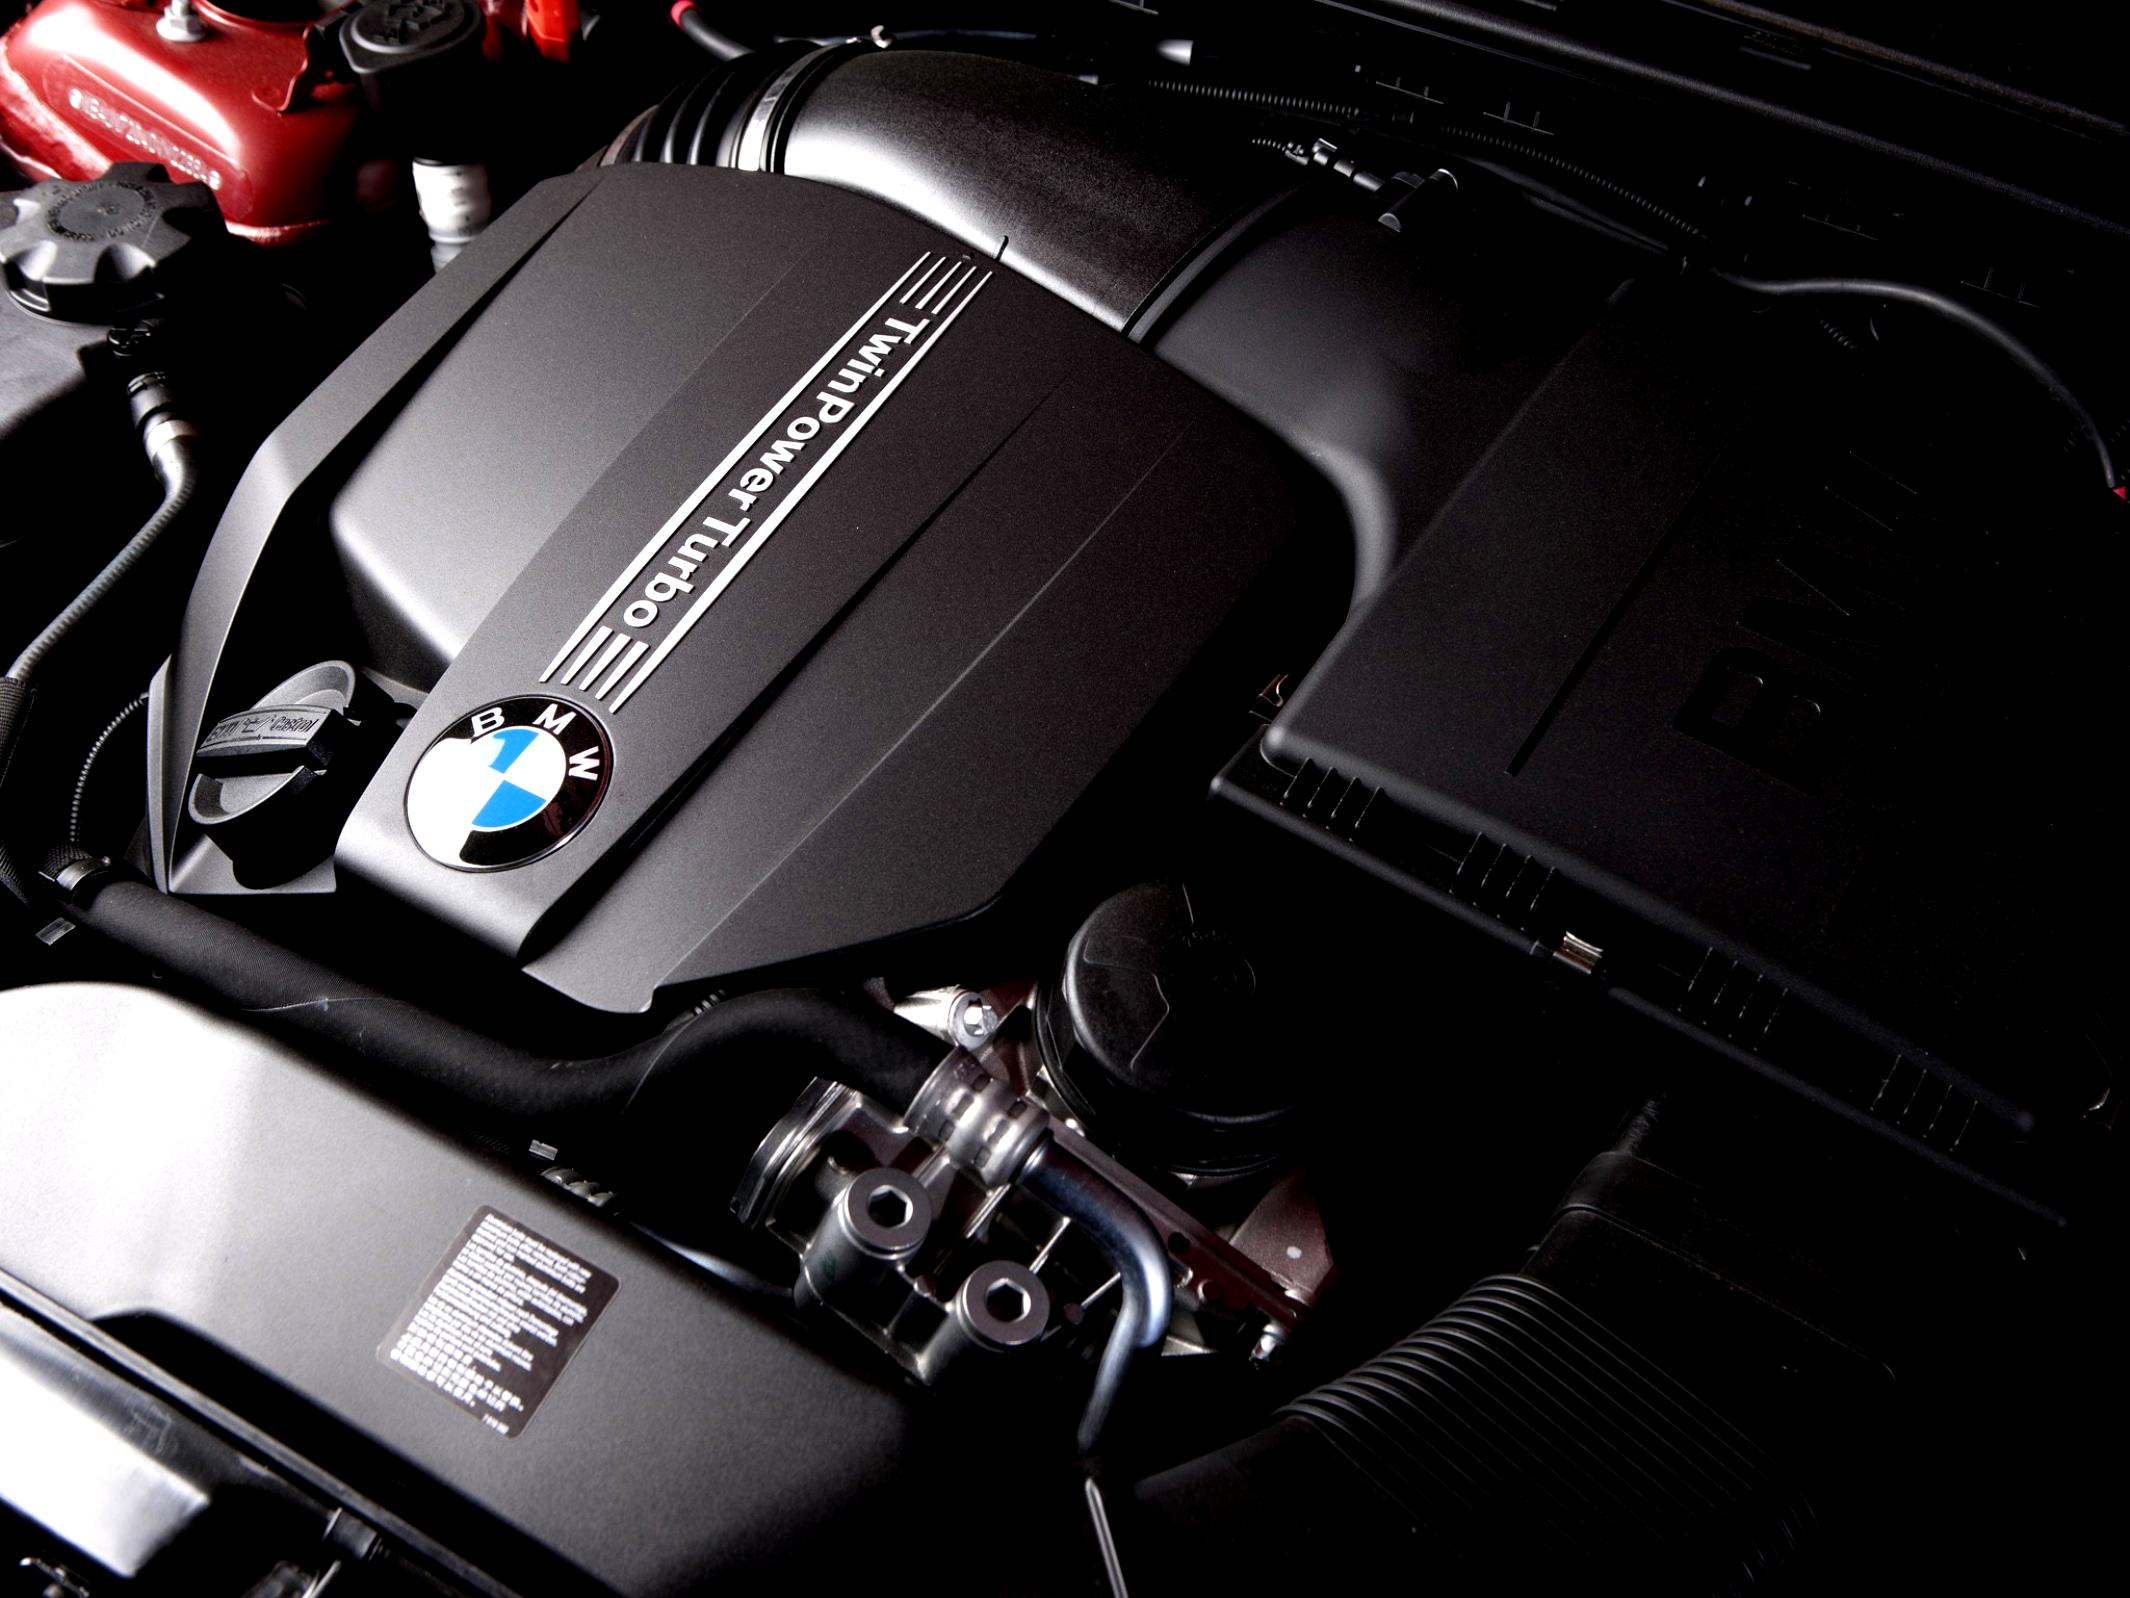 BMW 1 Series Cabriolet E88 2010 #39